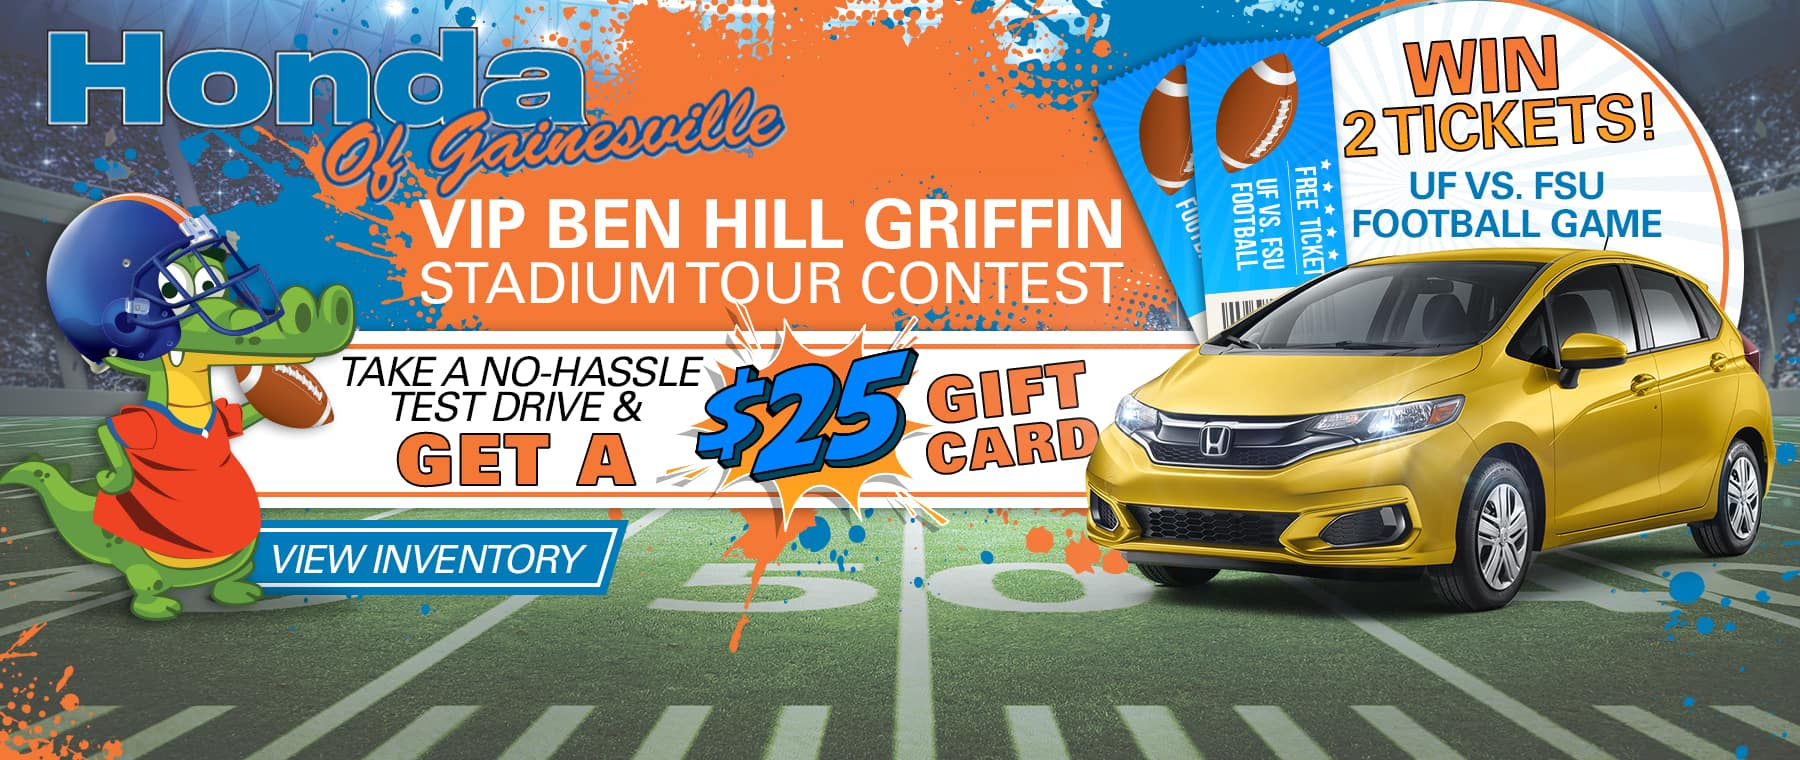 Honda Of Gainesville VIP Ben Hill Griffin Stadium Tour Contest | Take A No-Hassle Test Drive & Get A $25 Gift Card | Win 2 Tickets! UF vs. FSU Football Game